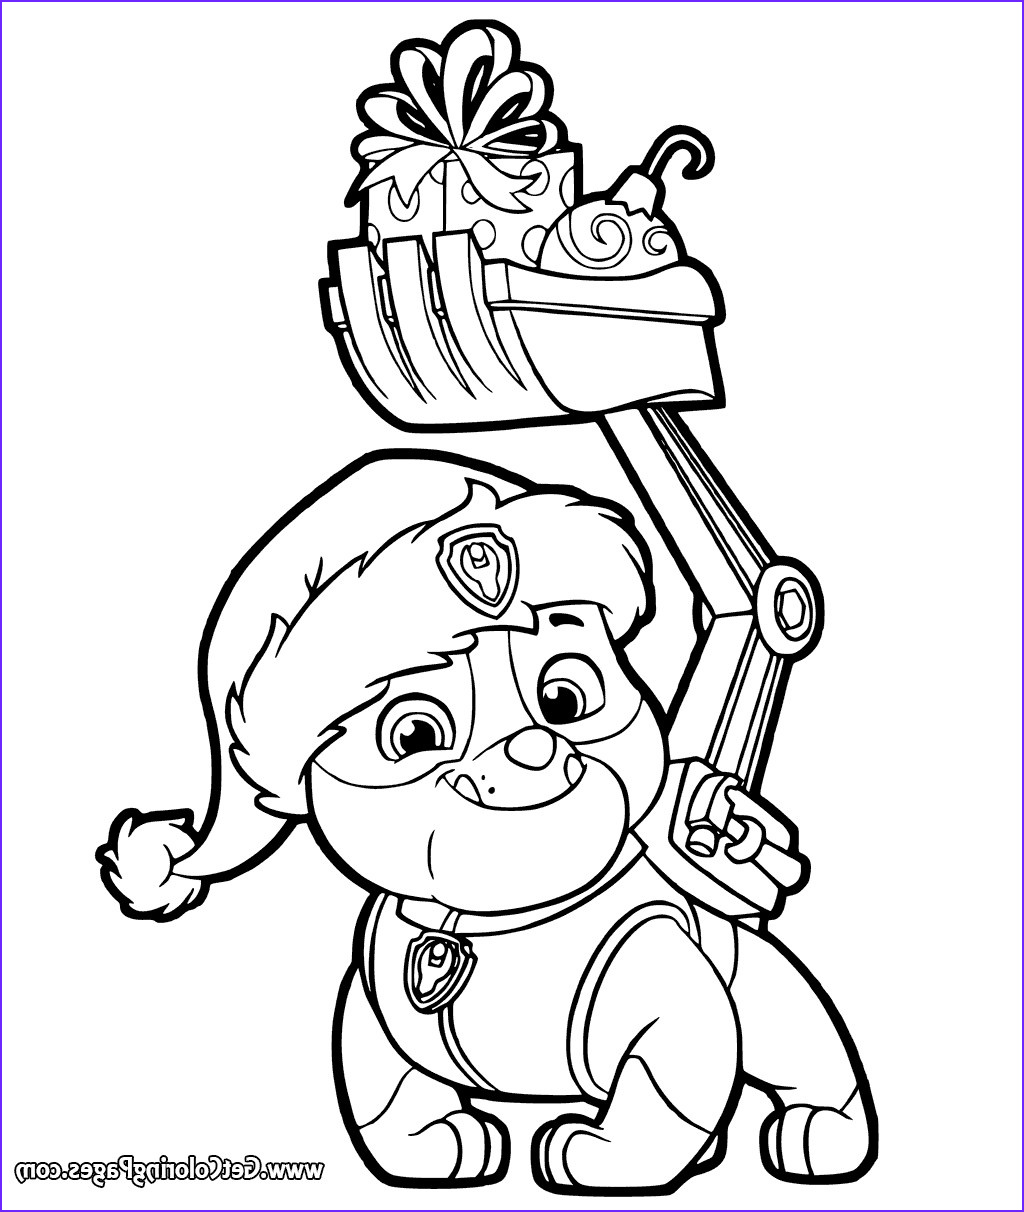 nick jr christmas coloring pages